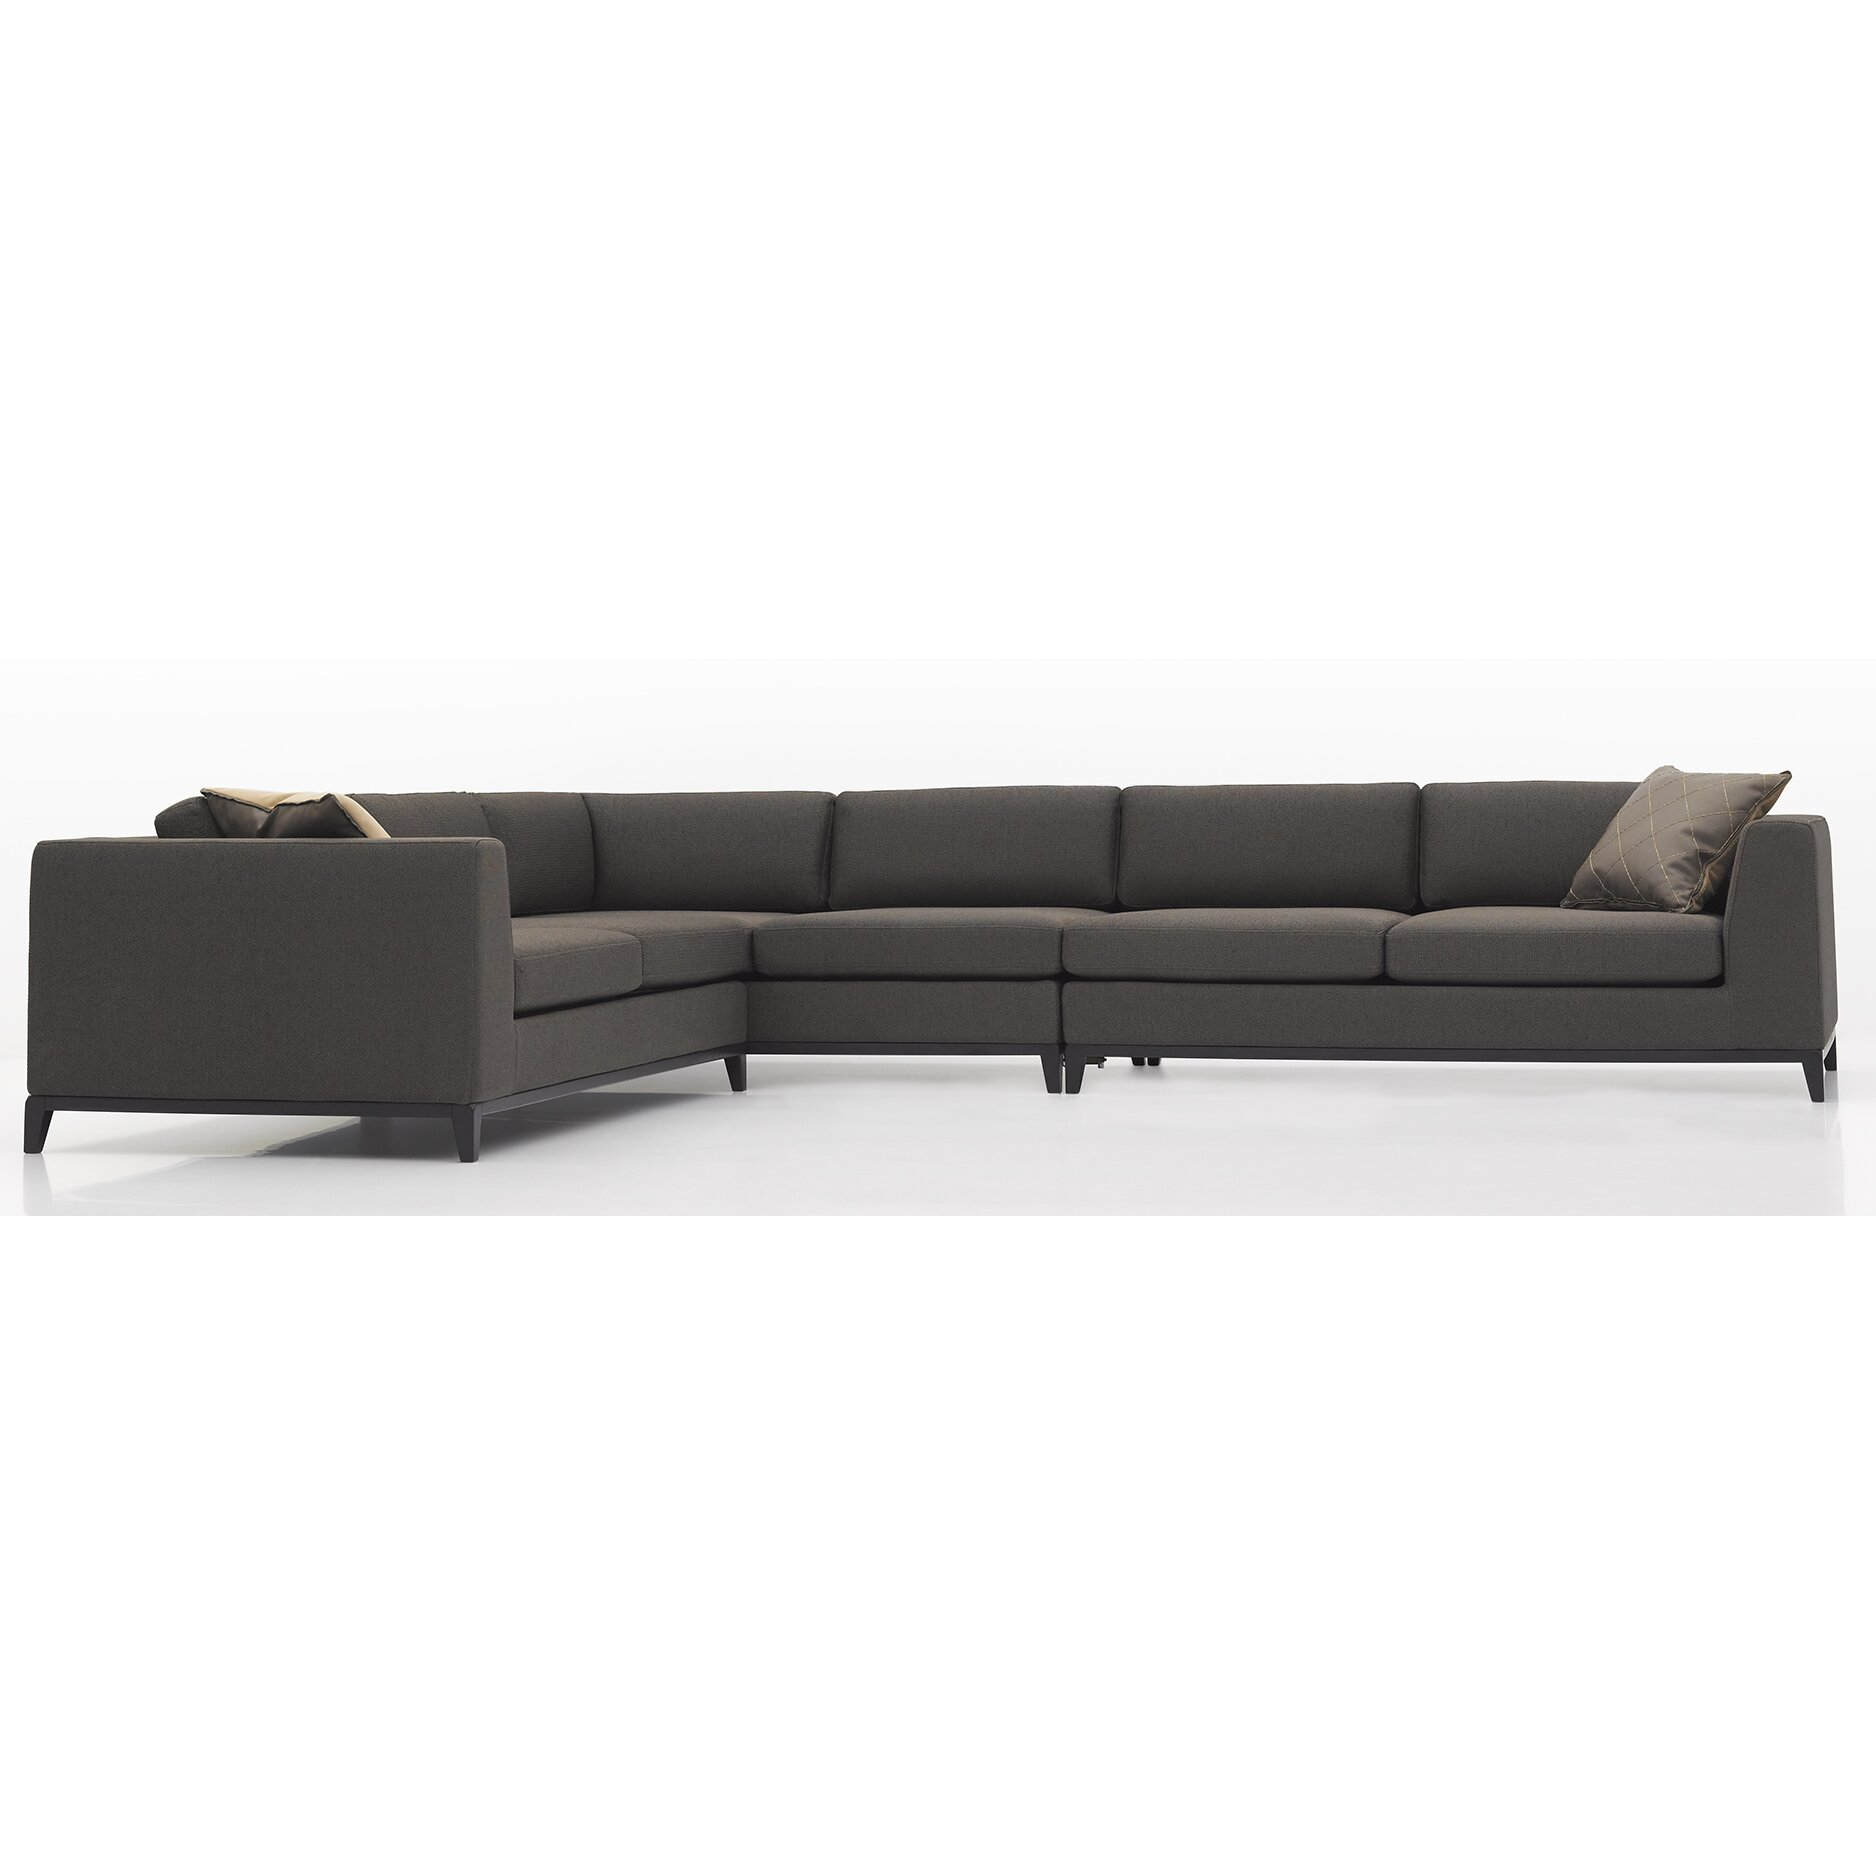 ... Replacement Cushions Outdoor Furniture. on wayfair furniture sectional